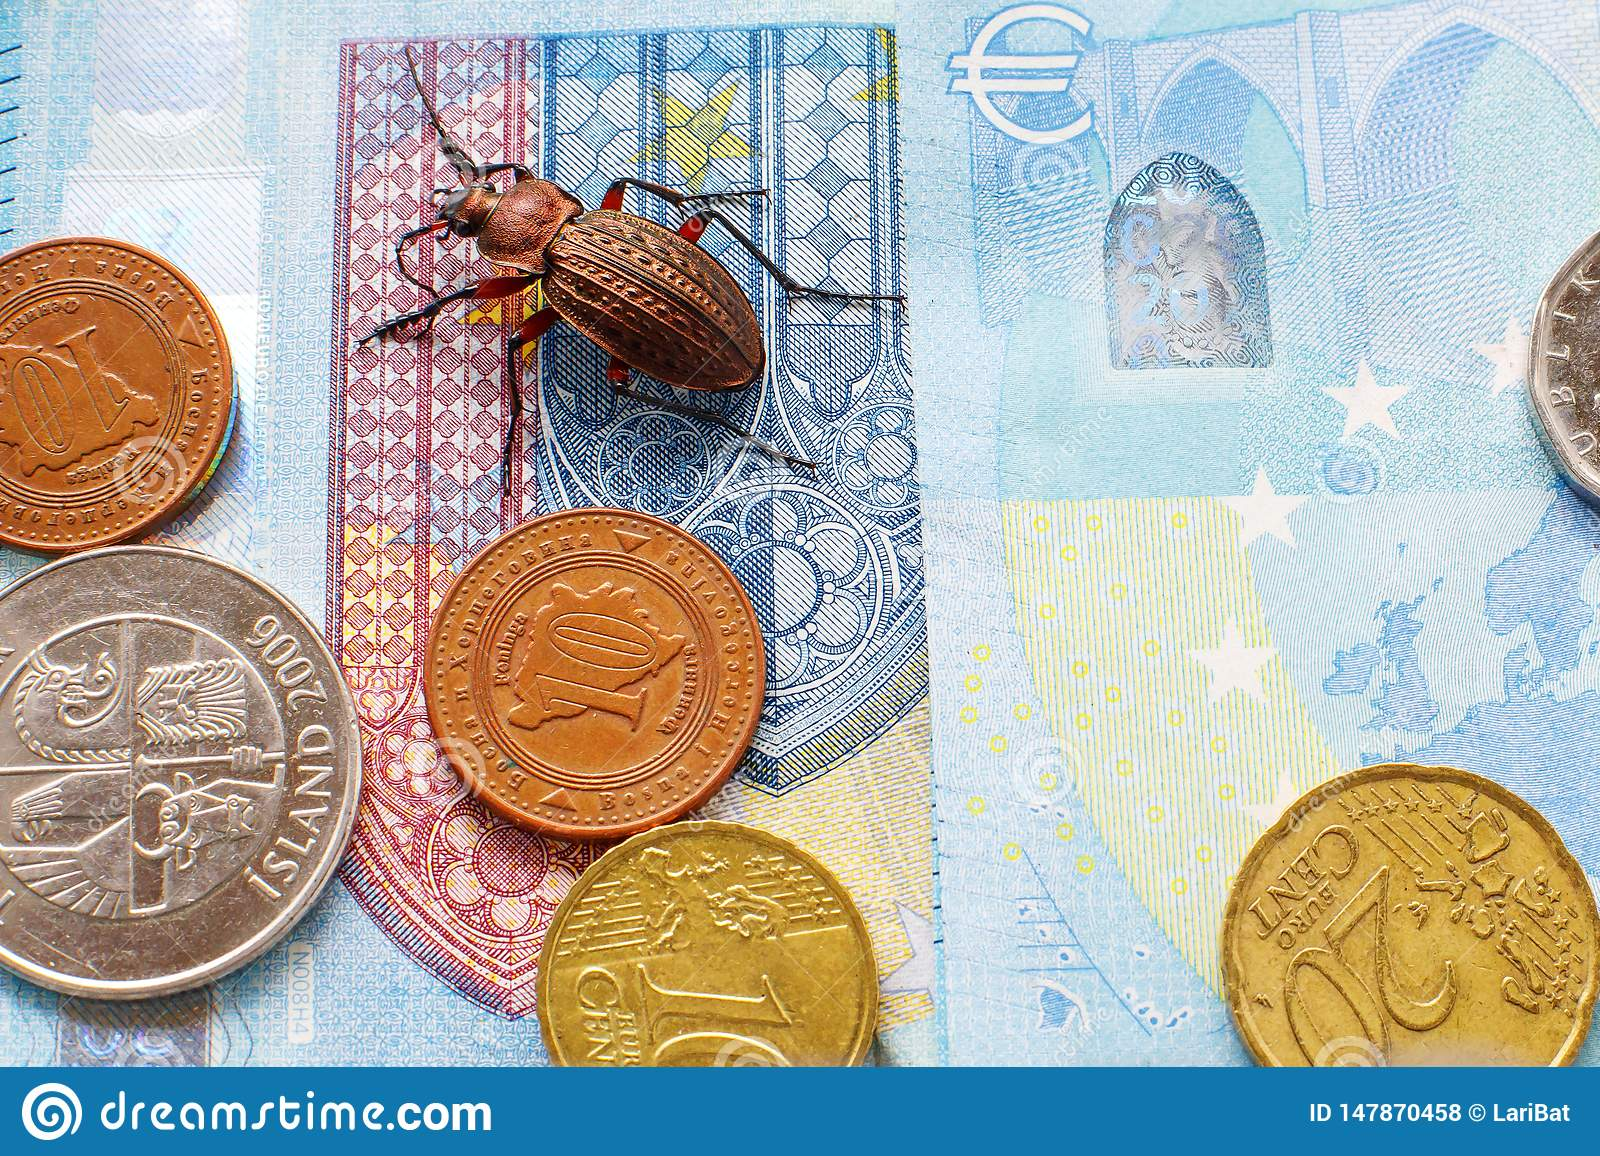 Ground beetle on the bill twenty euros, small coins of Europe